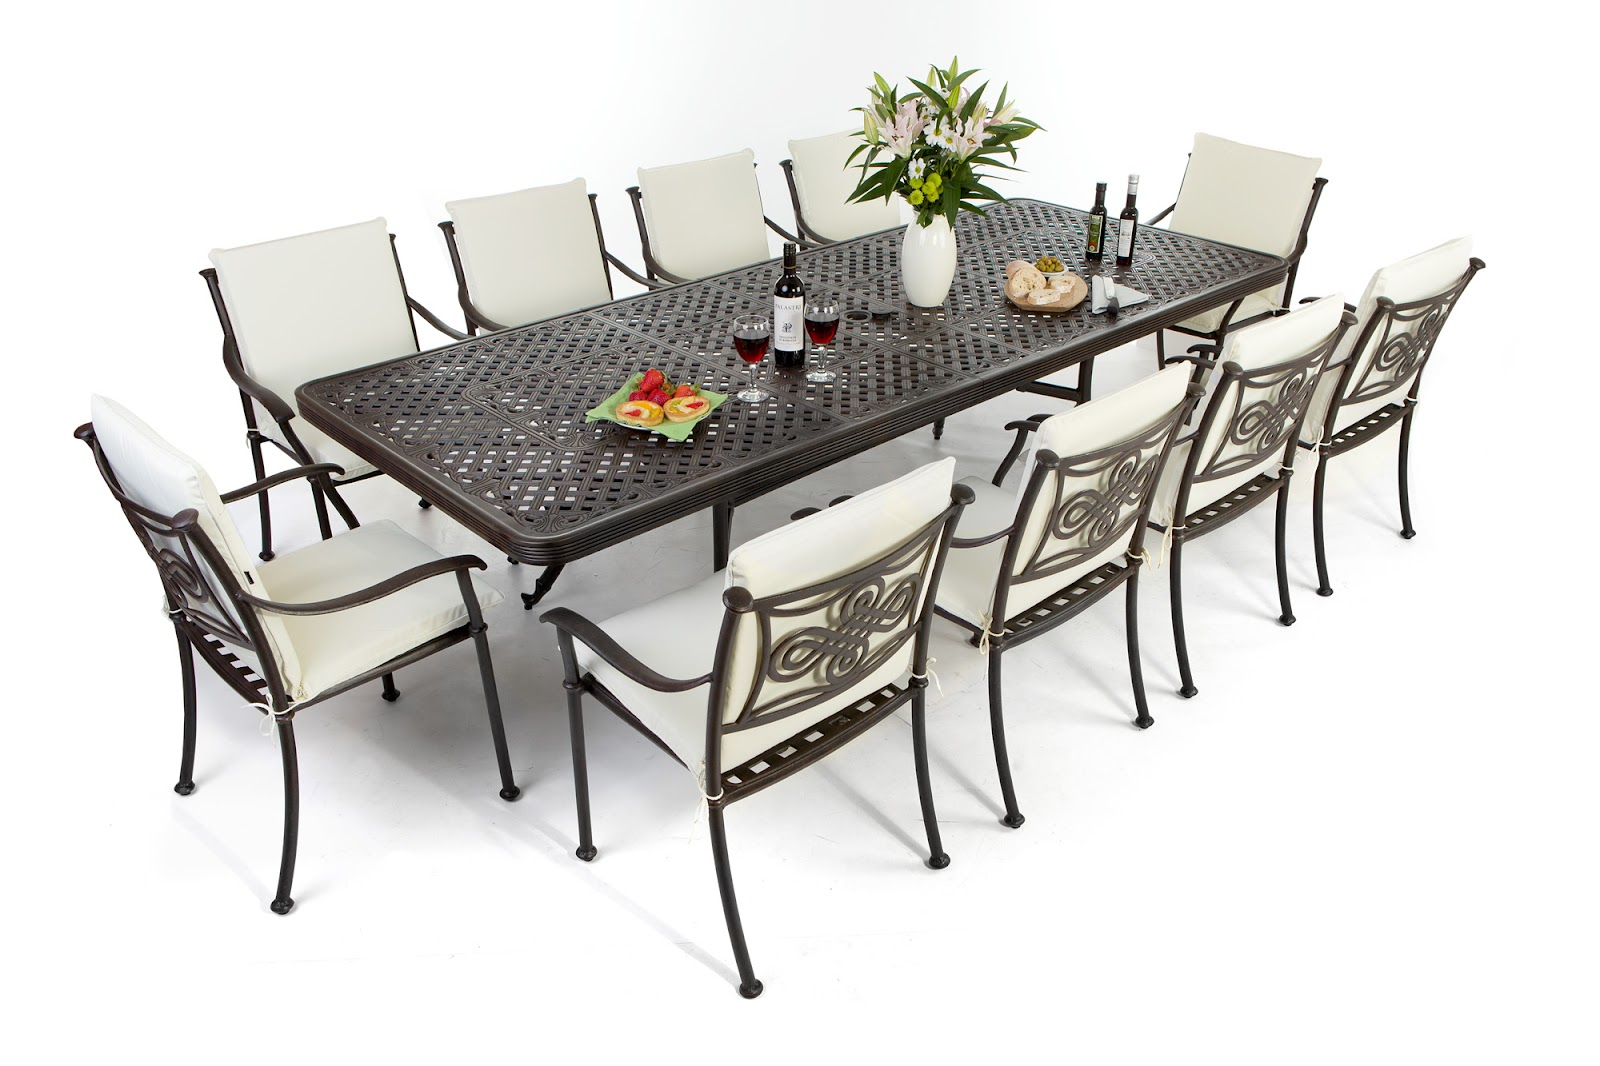 Outside Edge Garden Furniture Blog The Versatile Rhodes Extendable 12 Seater